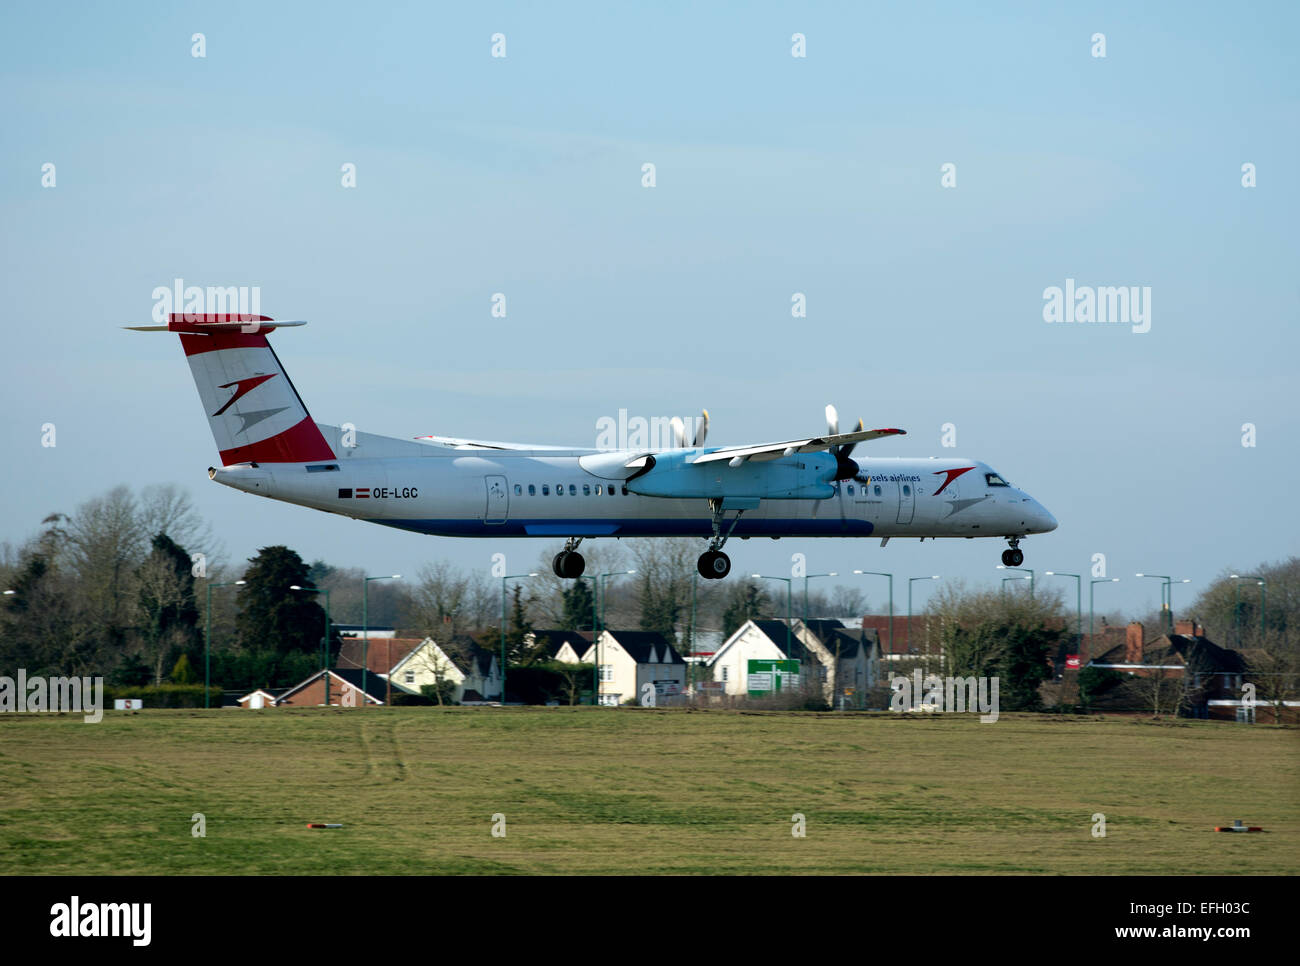 Brussels Airlines Dash 8 landing at Birmingham Airport, UK - Stock Image